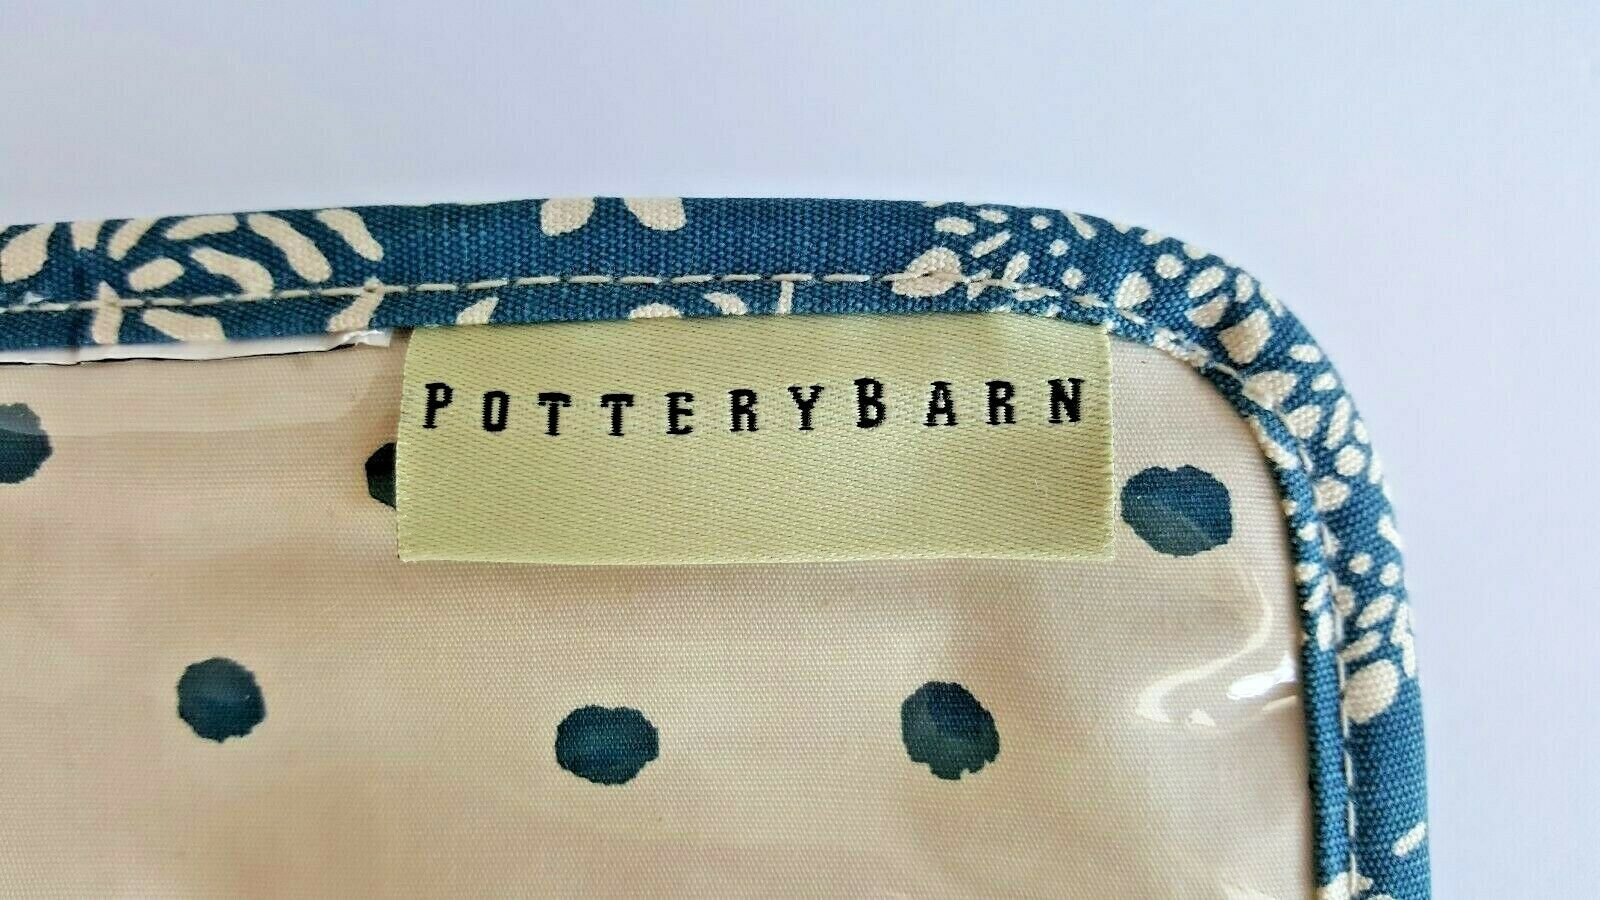 POTTERY BARN TRAVEL COSMETIC JEWELRY BAG BLUE COTTON PRINT VINYL POCKE...